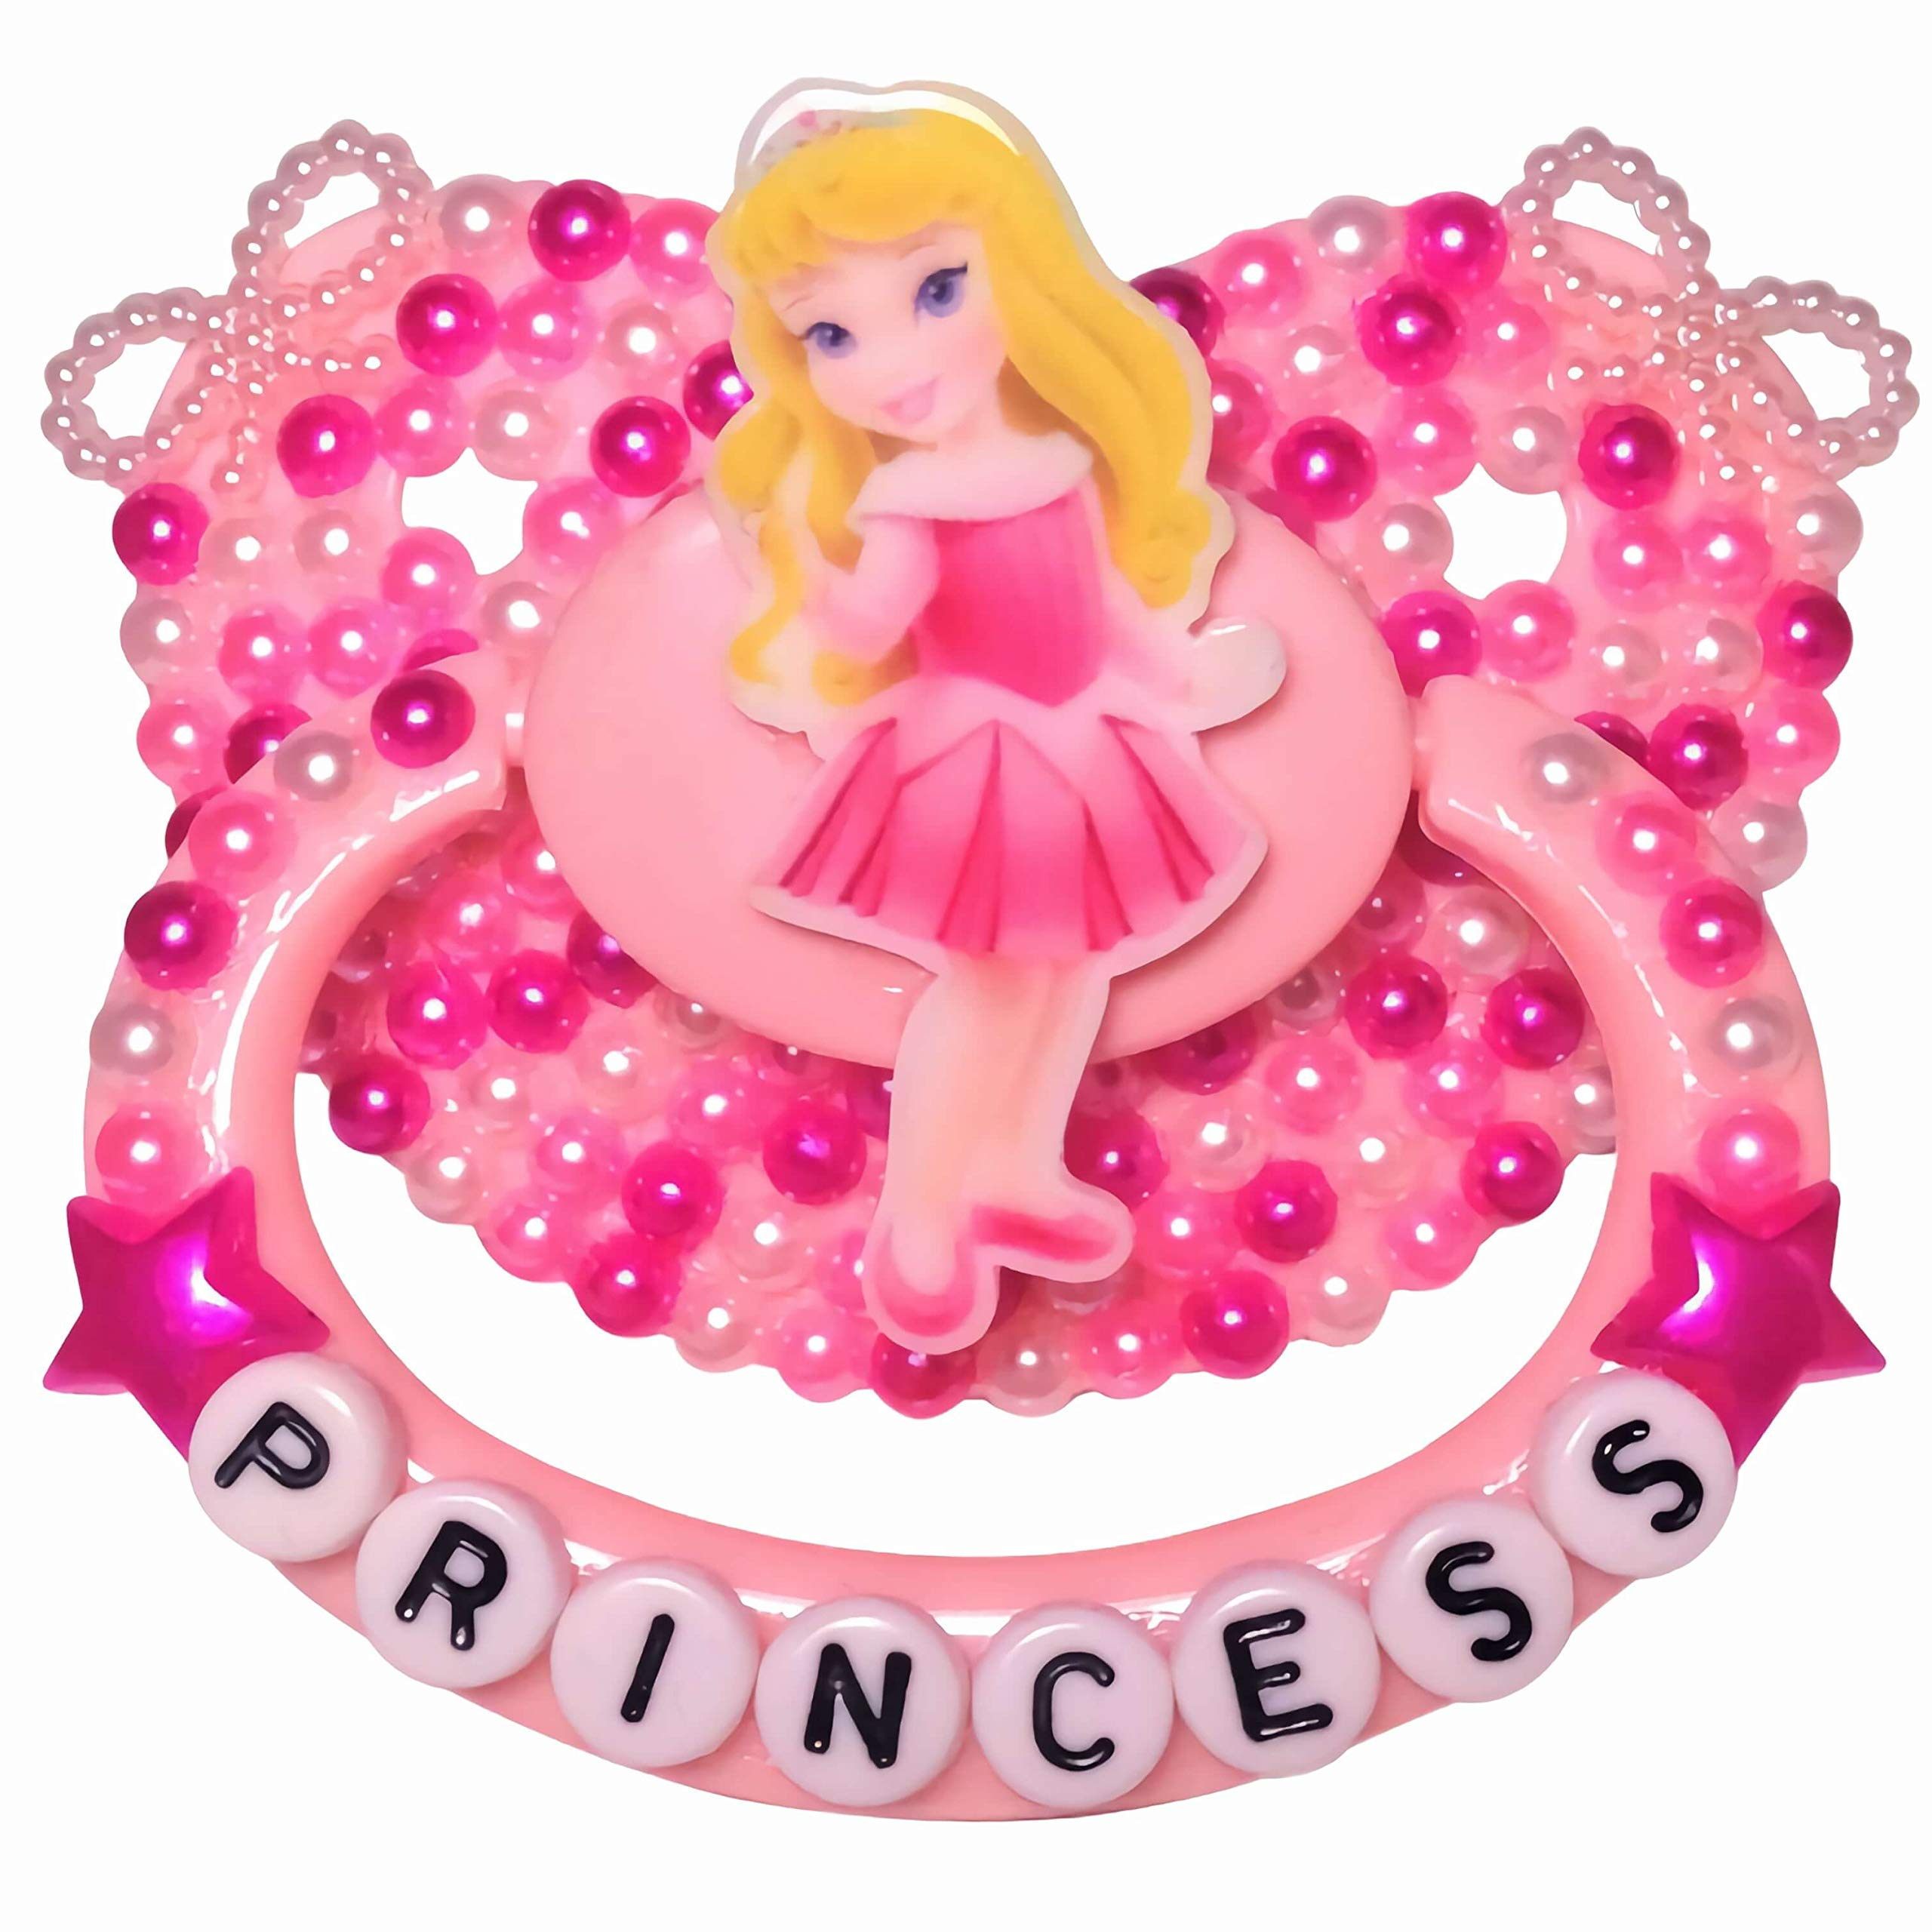 Baby Bear Pacis Adult Pacifier,''Princess'' Pink Sleeping Beauty Adult Paci (DDLG/ABDL) by Baby Bear Pacis